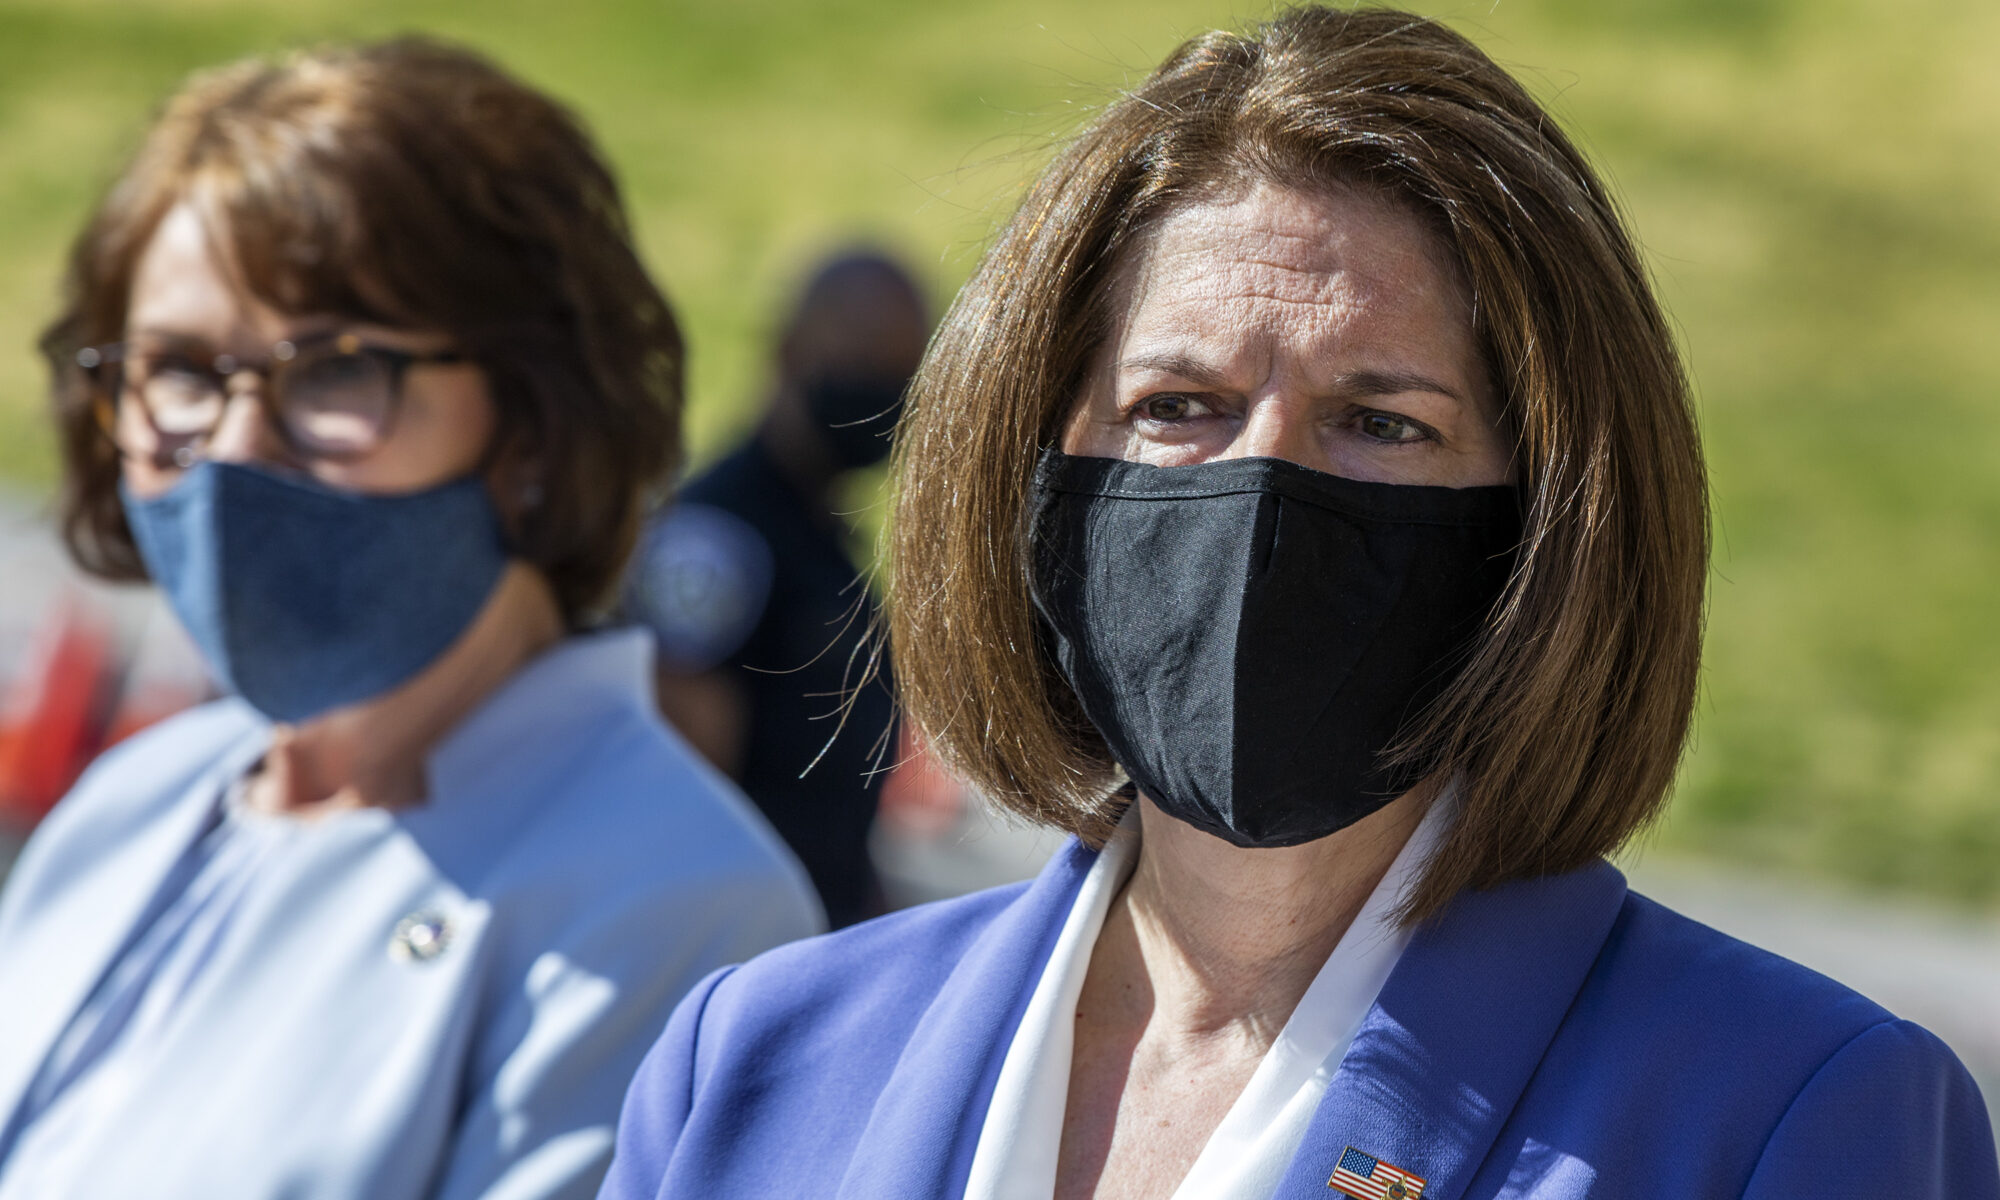 Cortez Masto, Lee top prior first-quarter fundraising tallies as congressional campaigns eye 2022 midterms